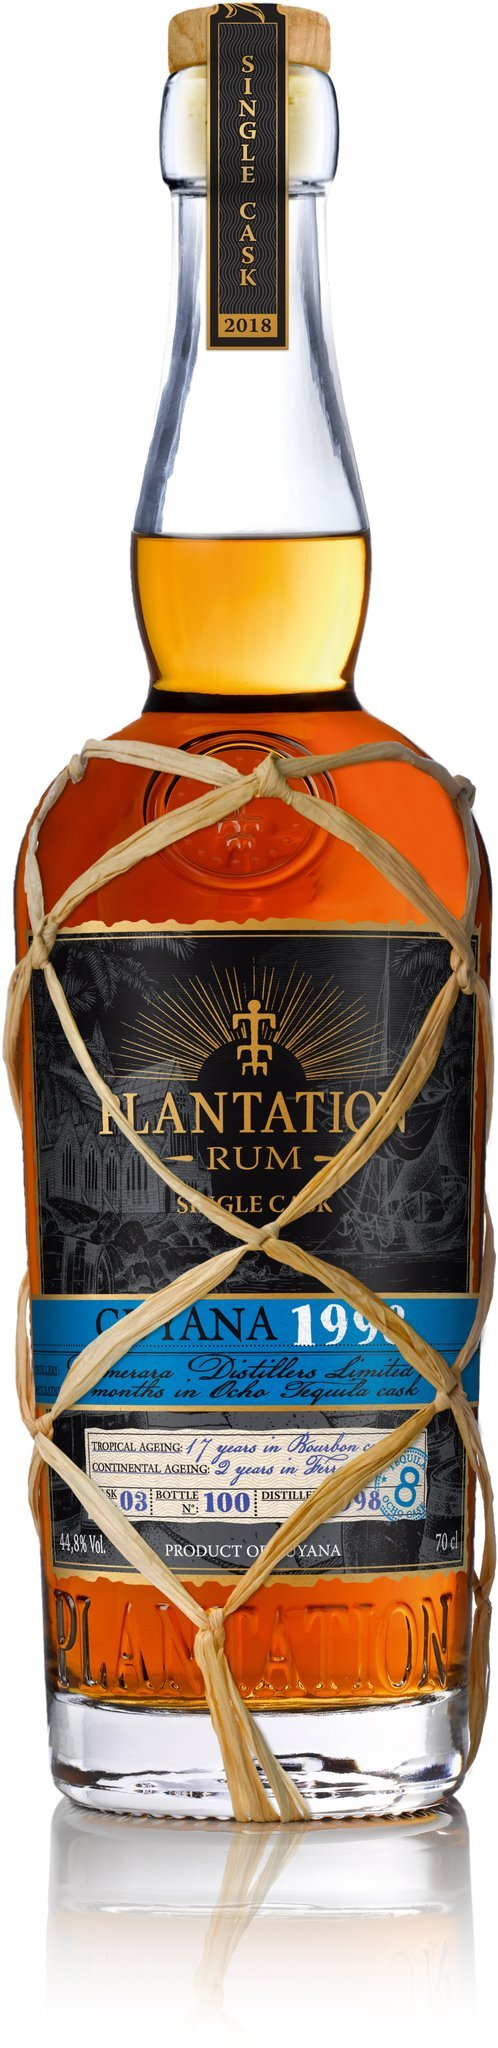 Plantation Rum Guyana 1998 (0,7 l / 44,8 % vol.)